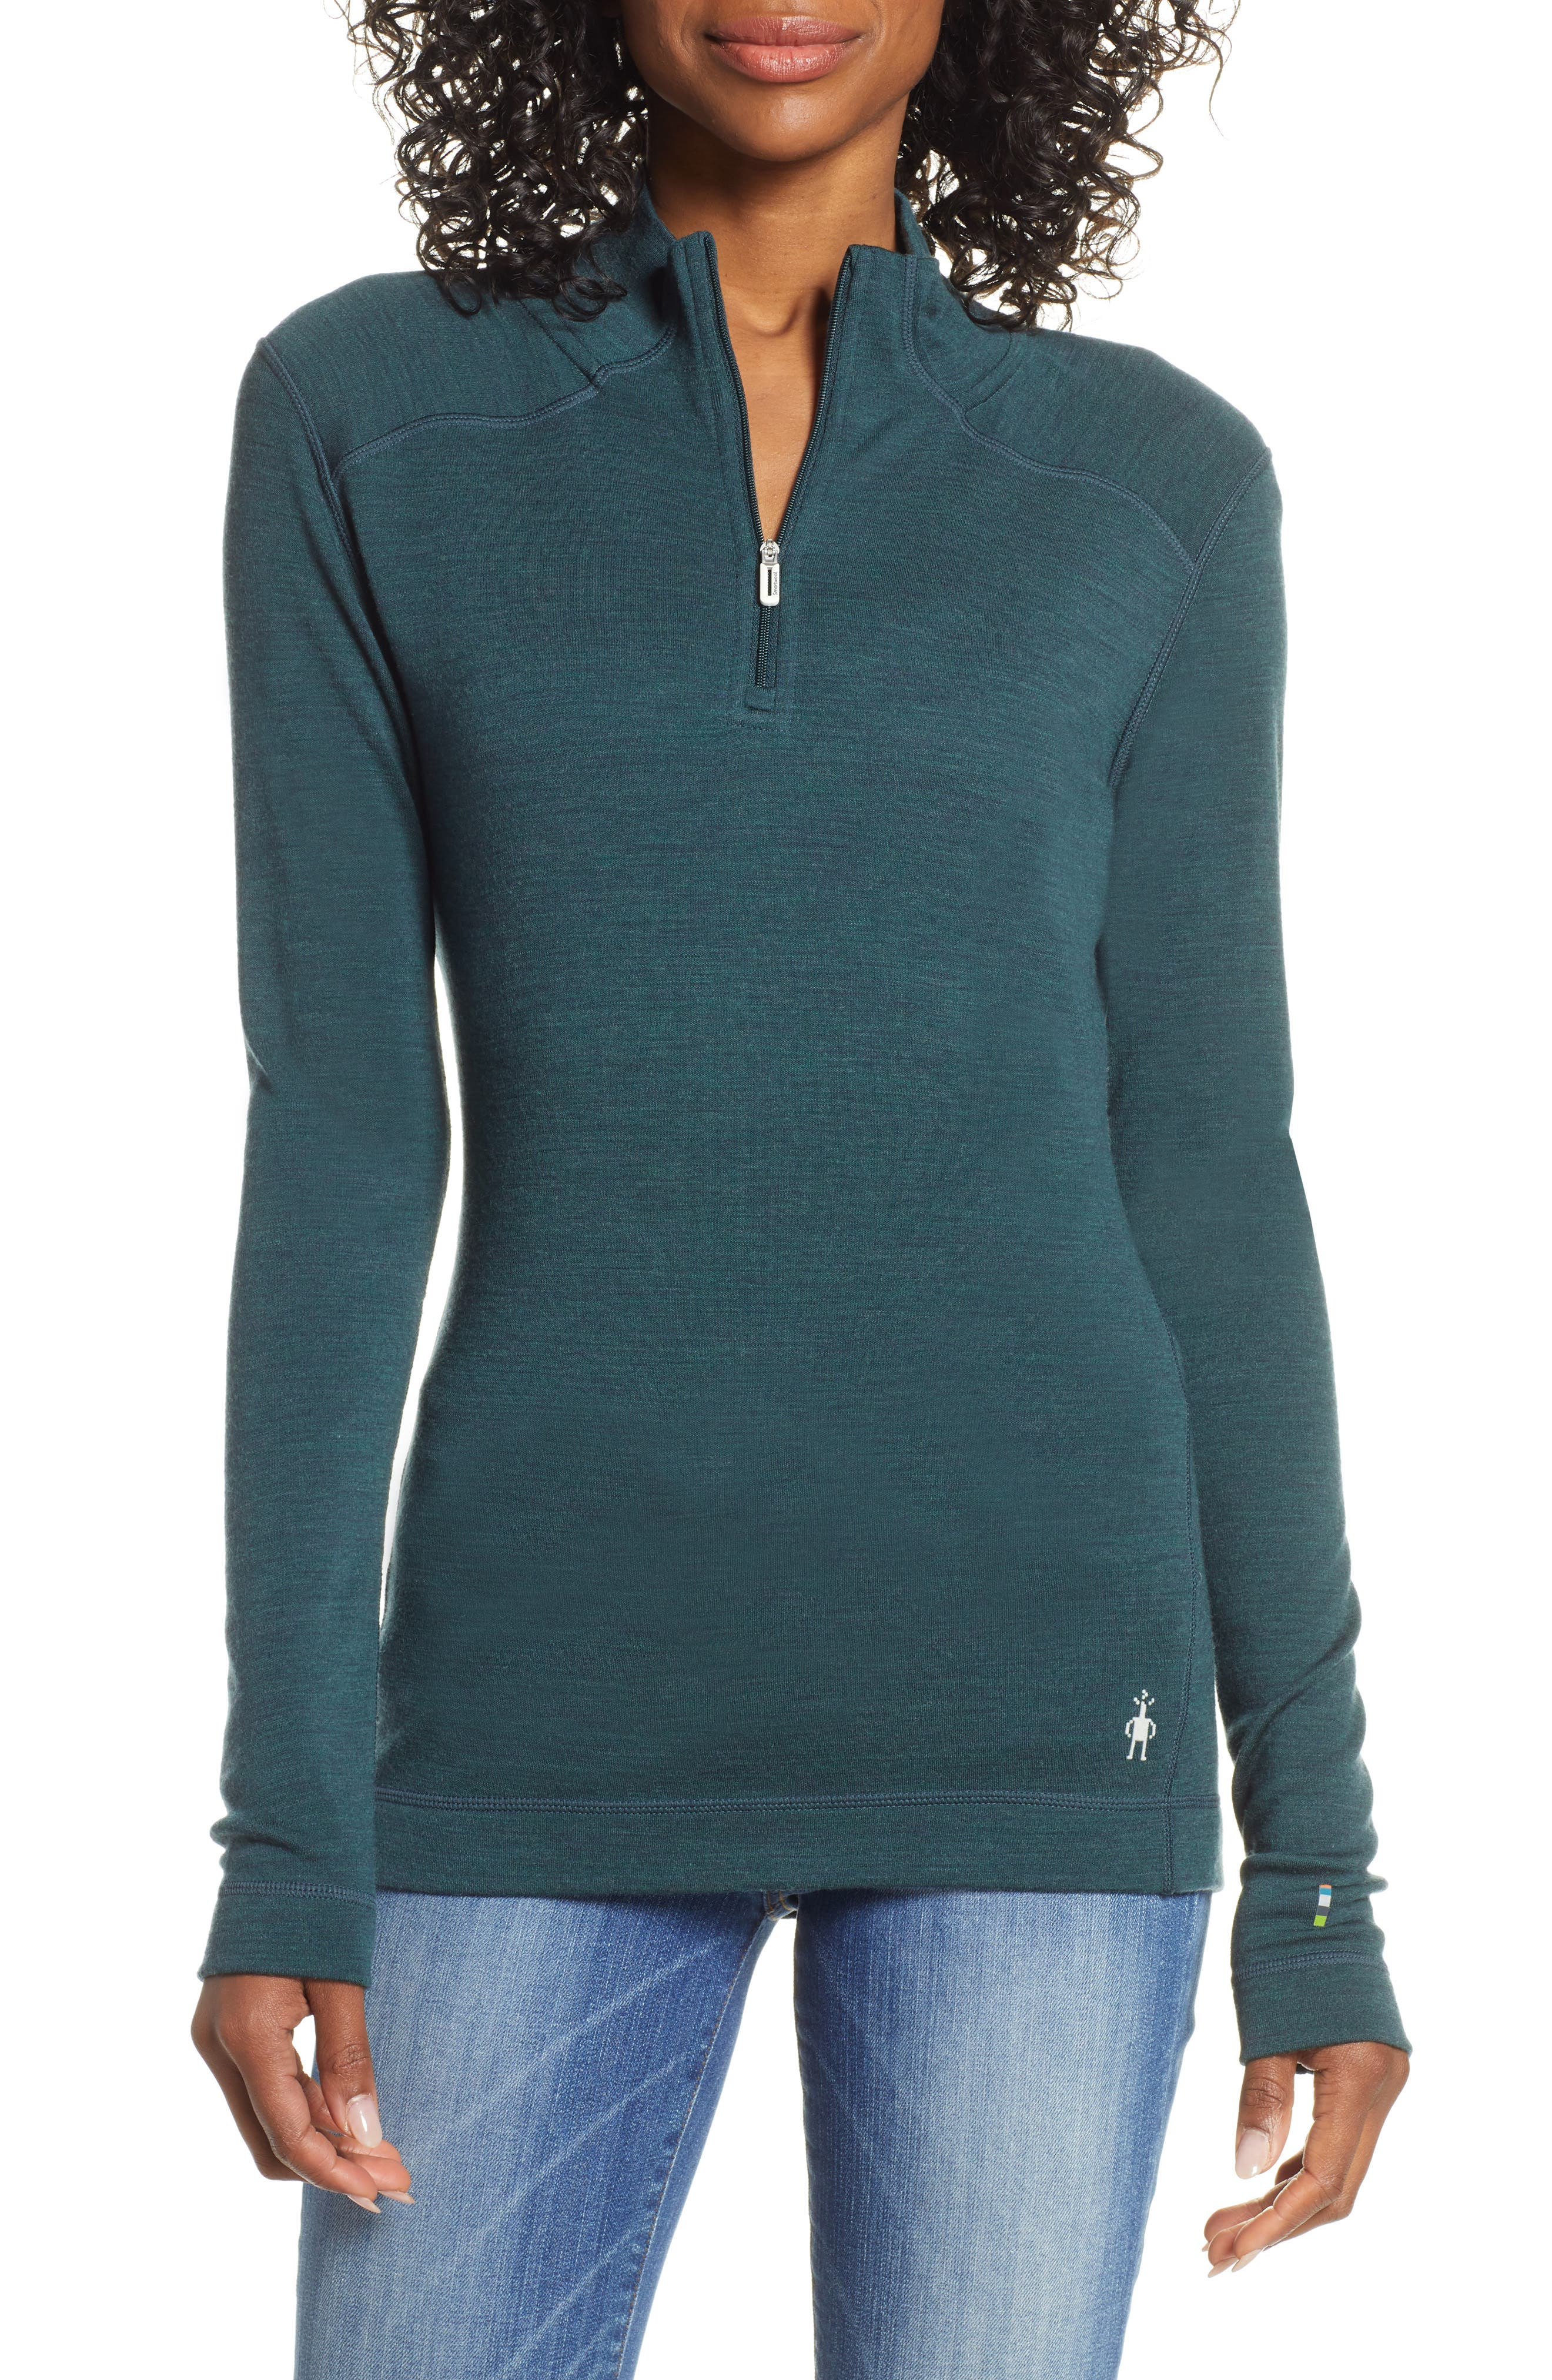 SMARTWOOL, Merino 250 Quarter Zip Base Layer Top, Main thumbnail 1, color, LOCHNESS HEATHER